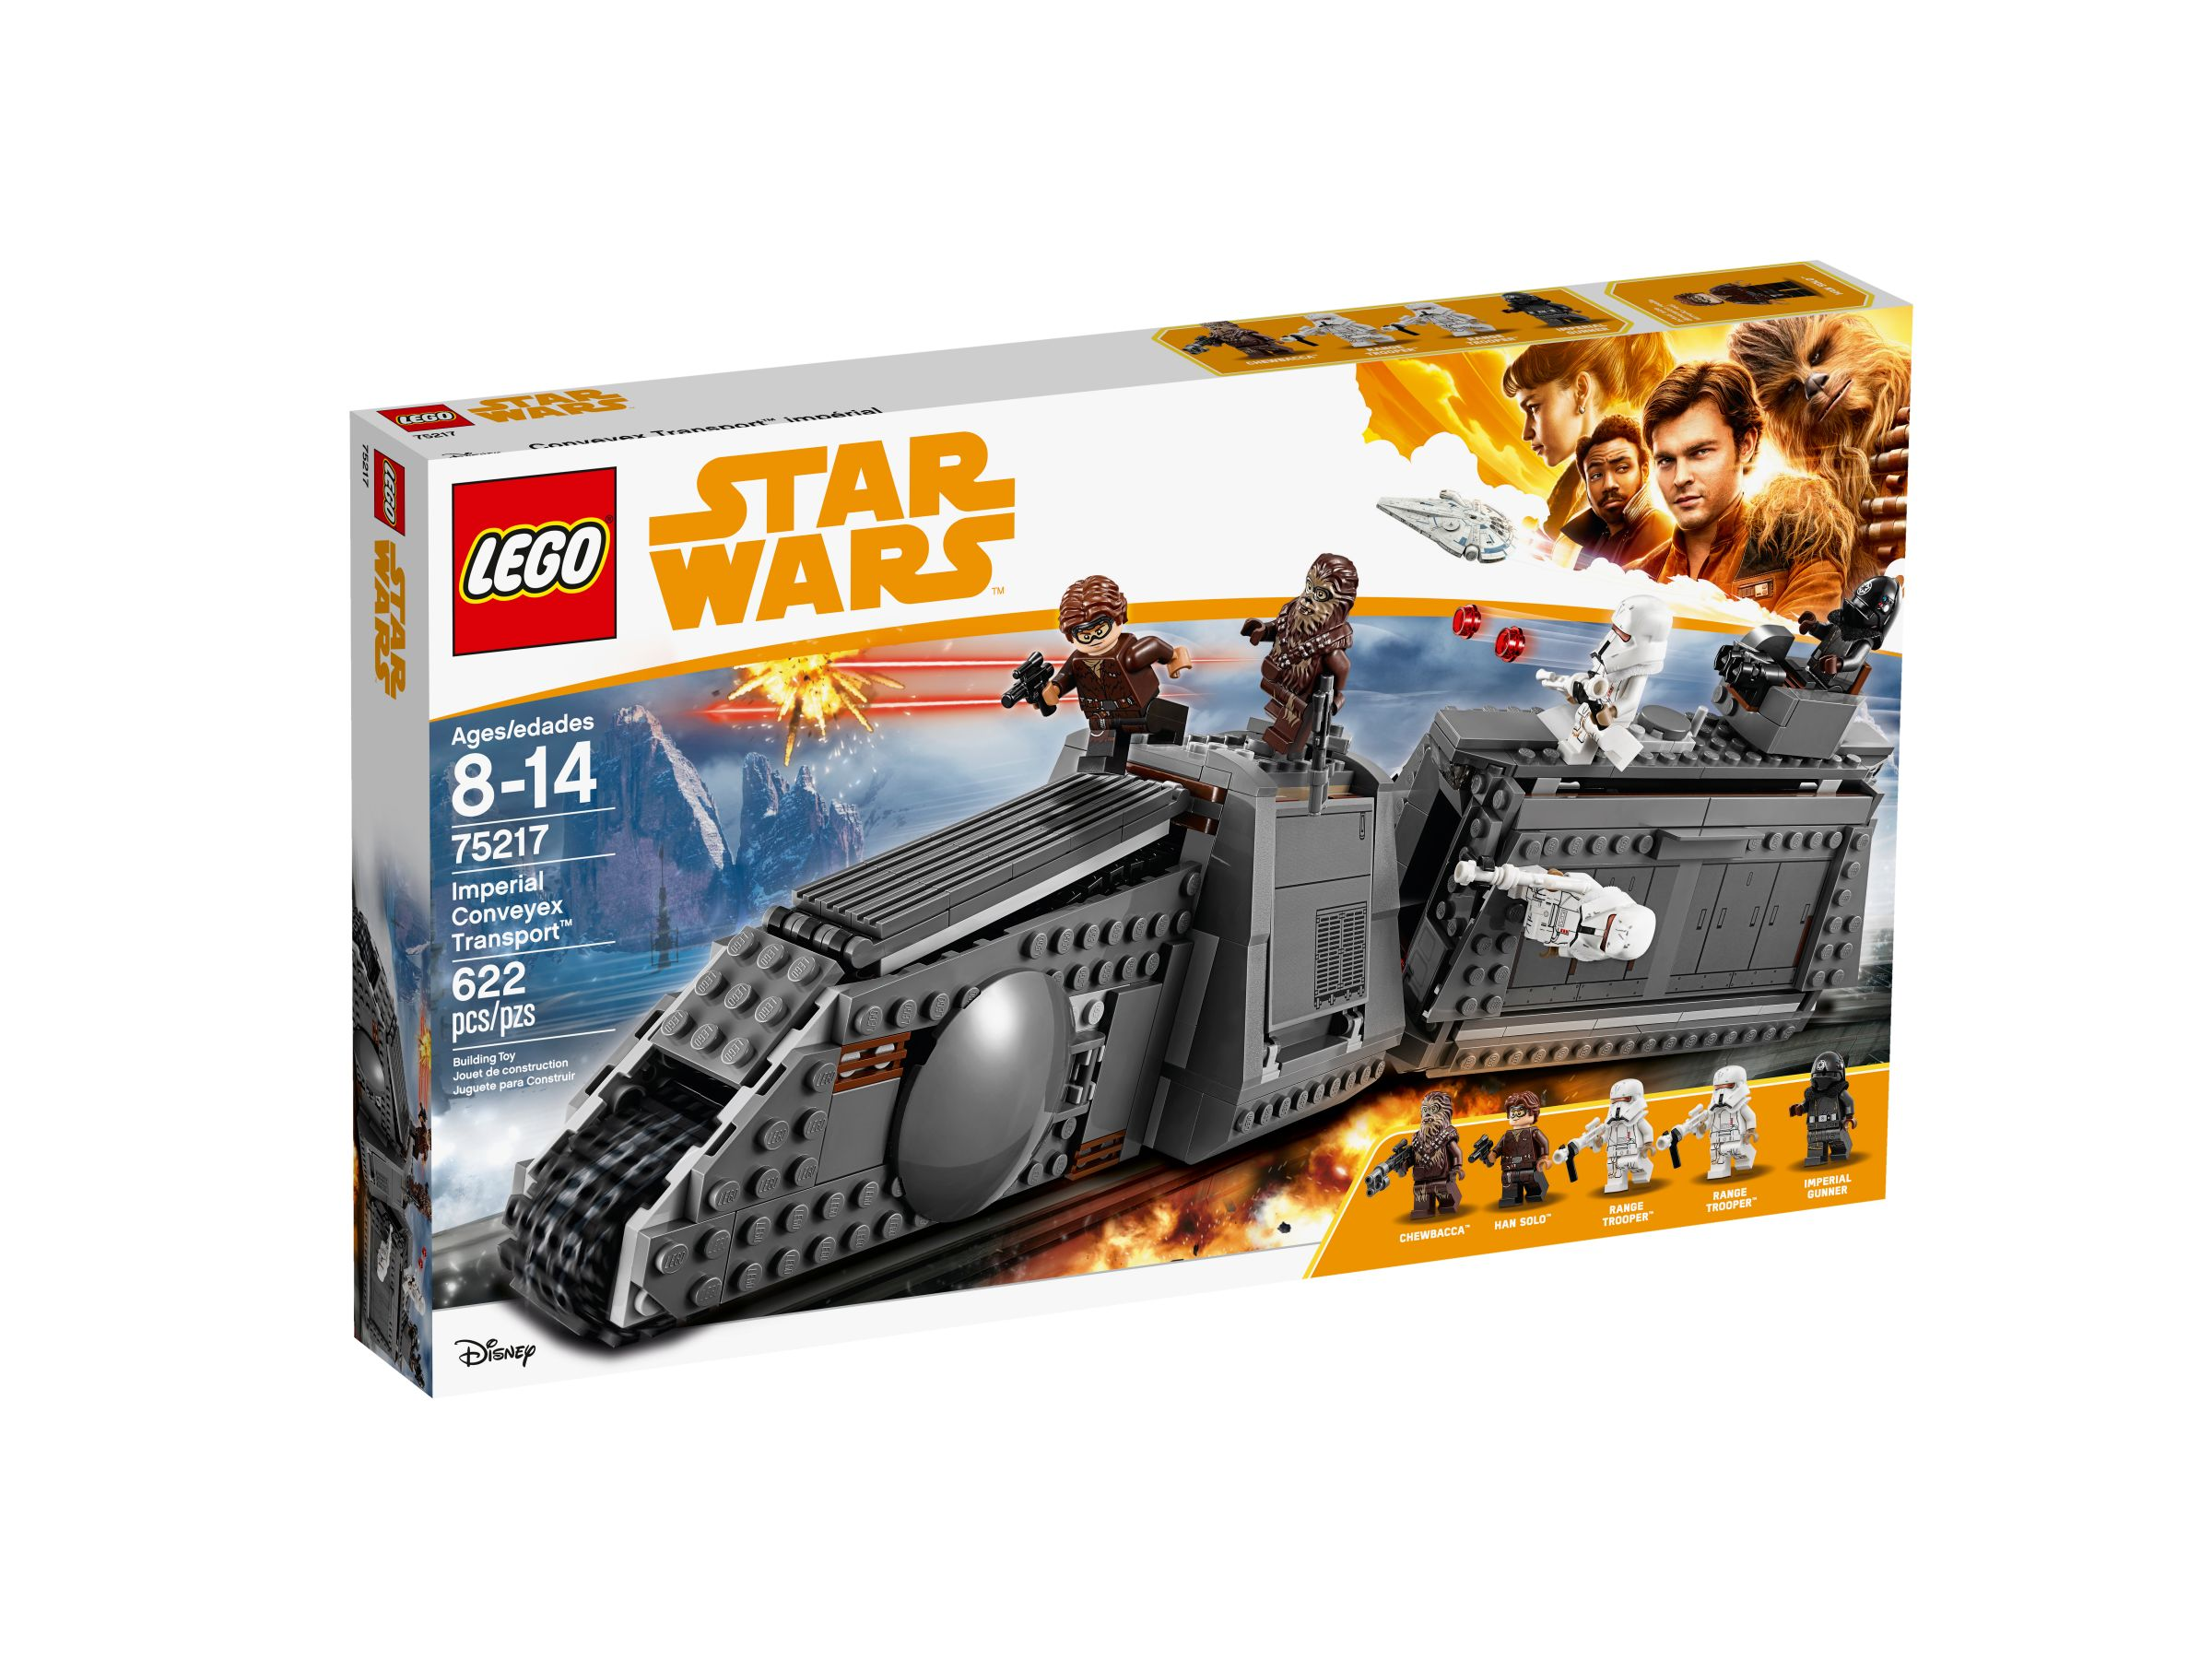 LEGO Star Wars 75217 Imperial Conveyex Transport™ LEGO_75217_alt1.jpg